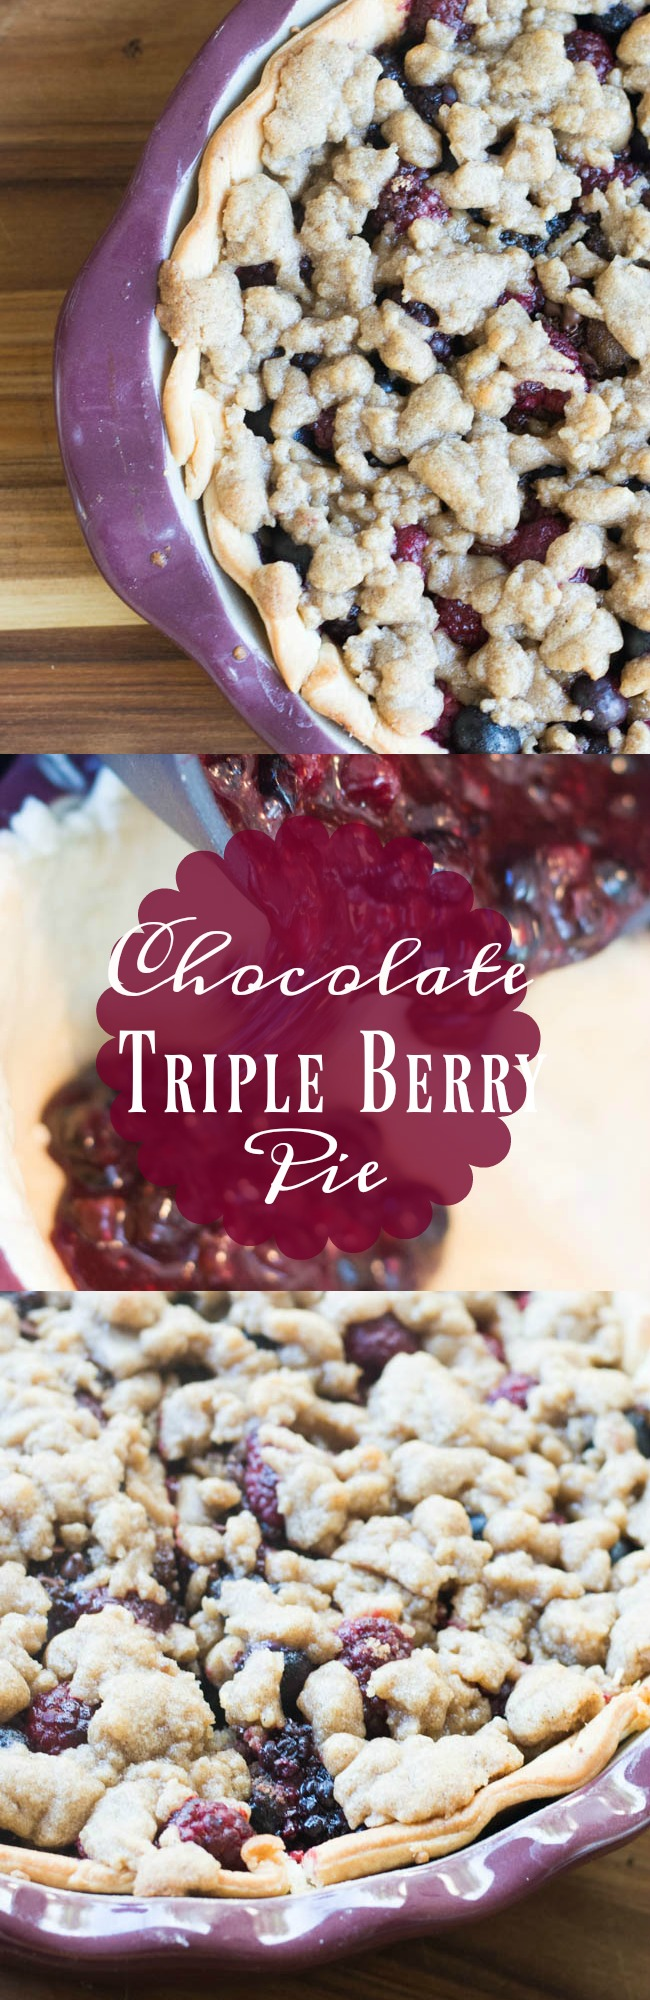 This chocolate triple berry pie recipe is full of AMAZING flavors that pair perfectly together. It's definitely the recipe that should be on your Thanksgiving table this year.  via @clarkscondensed